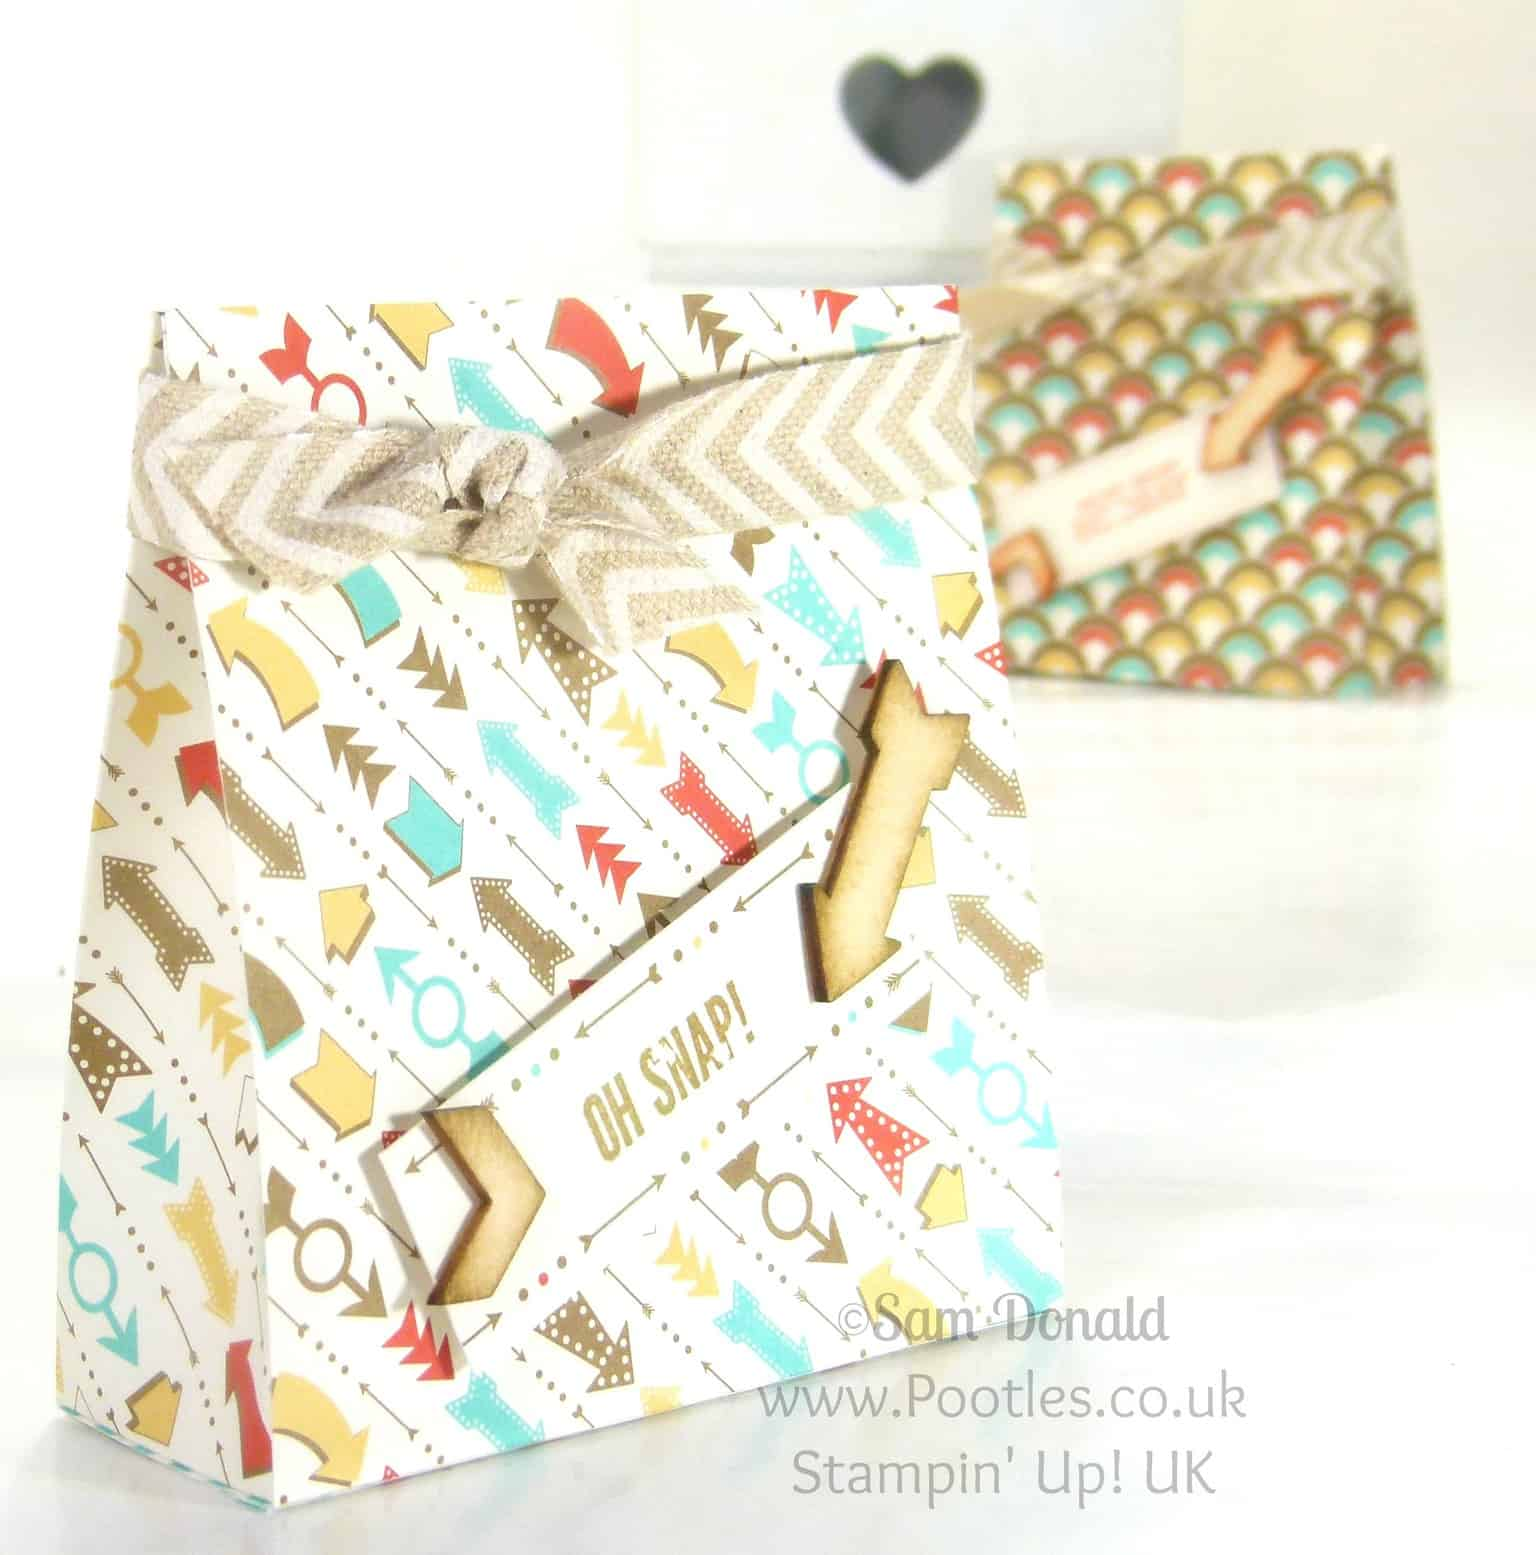 POOTLES Stampin' Up! UK Retro Fresh Bag Tutorial